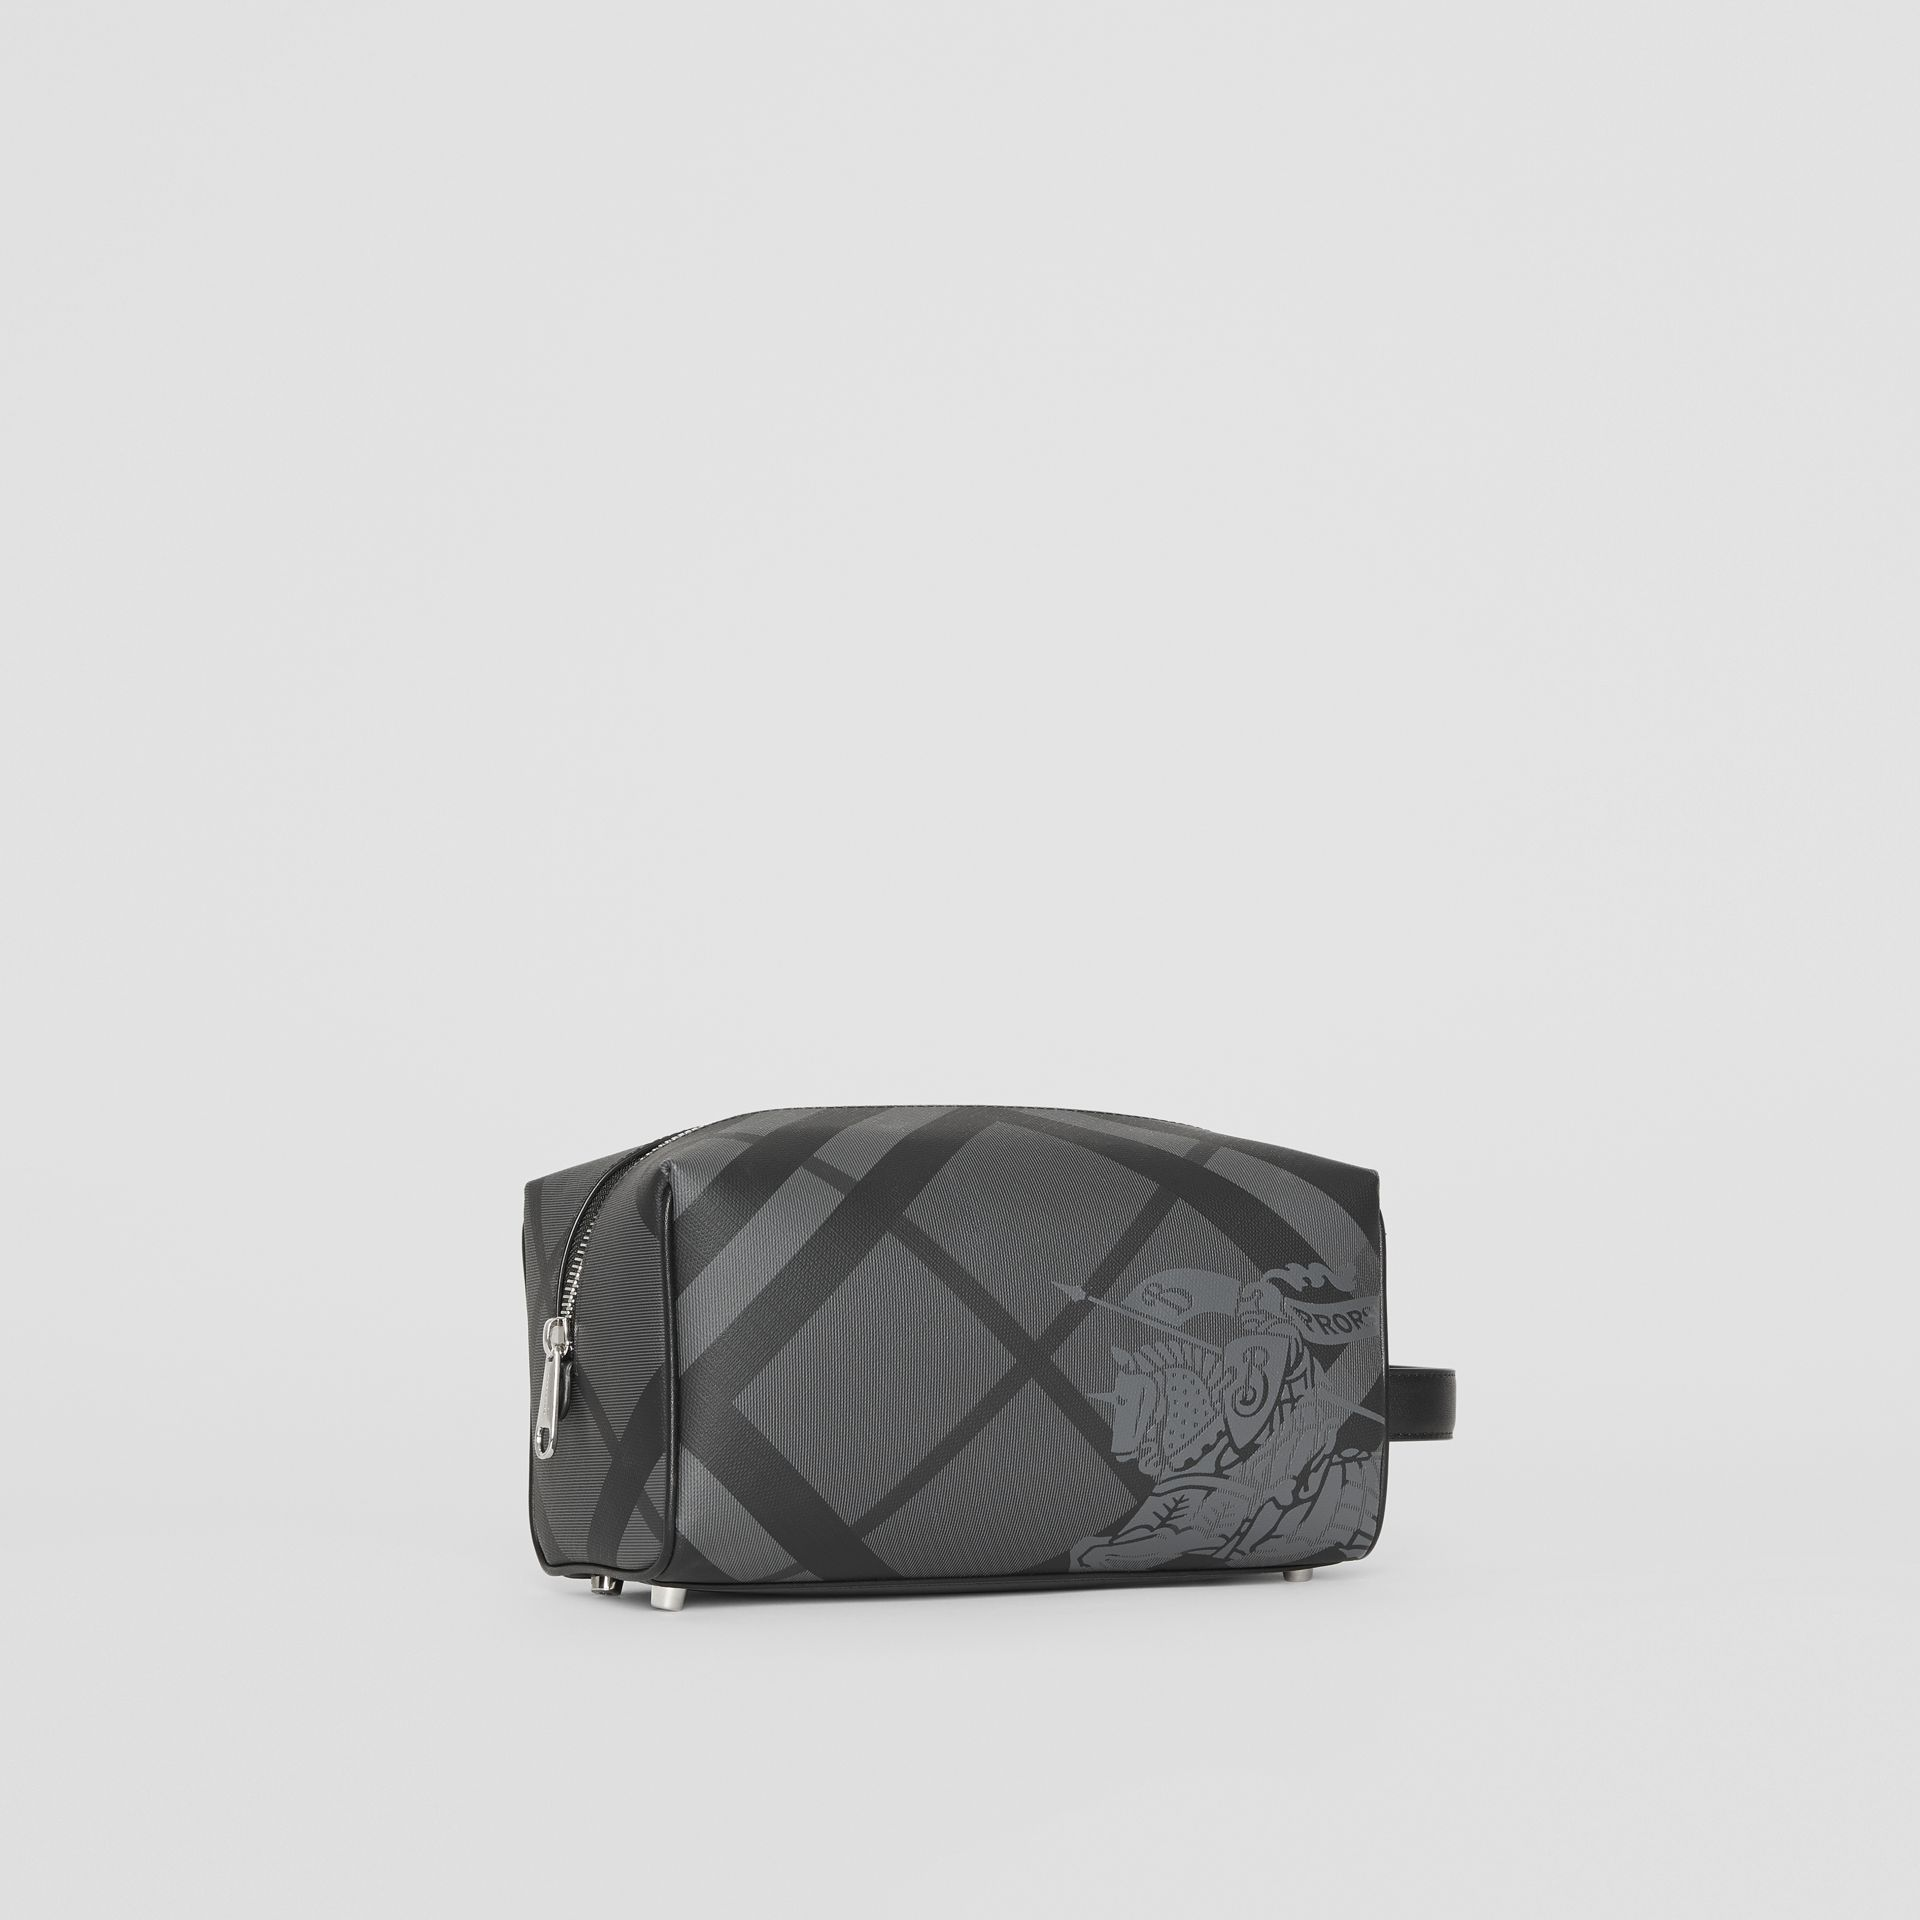 EKD London Check and Leather Pouch in Charcoal/black - Men | Burberry United Kingdom - gallery image 6